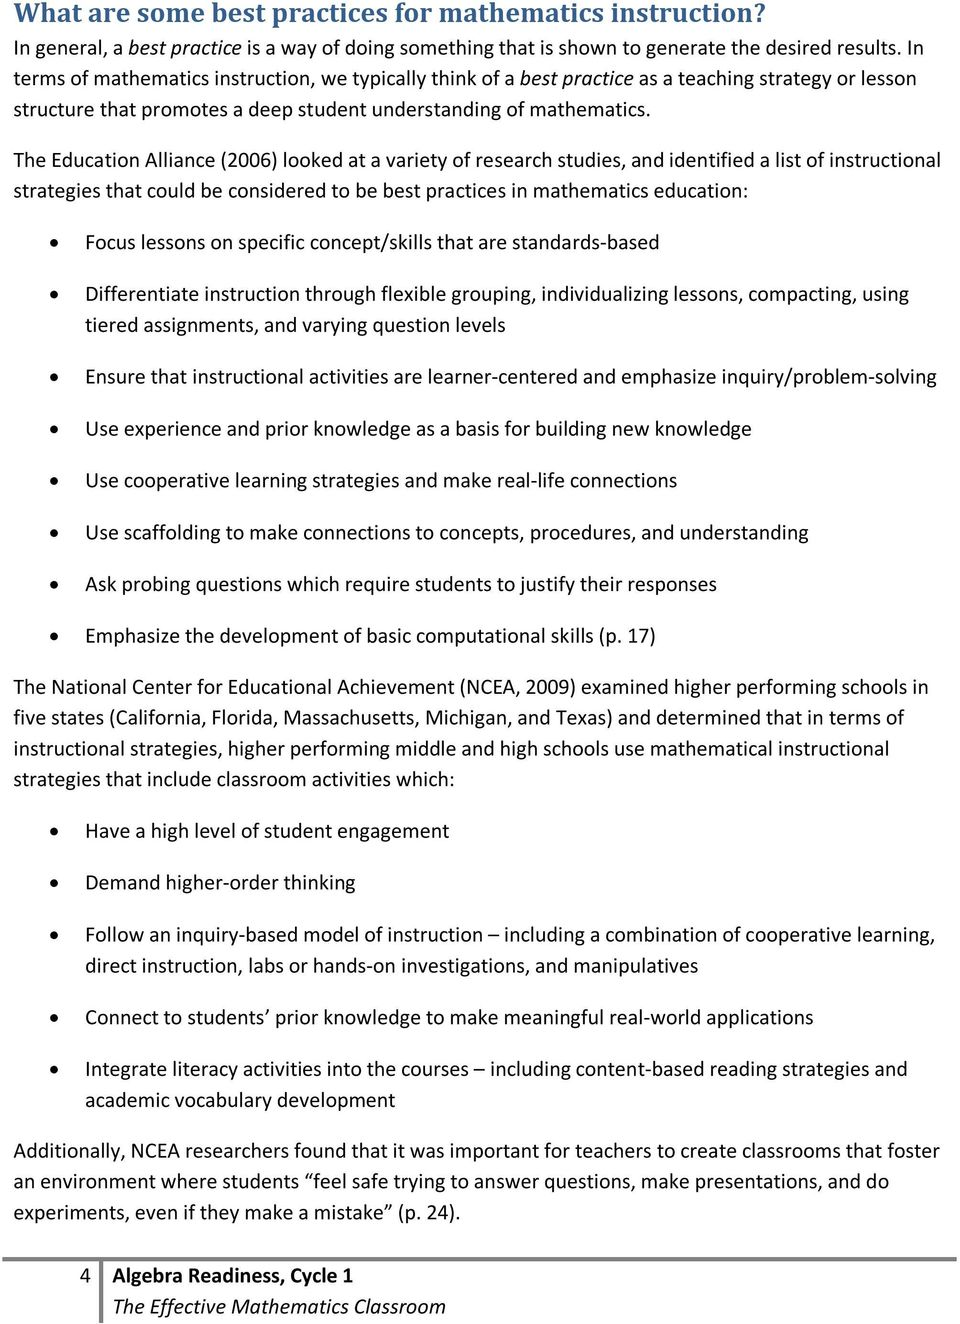 The Education Alliance (2006) looked at a variety of research studies, and identified a list of instructional strategies that could be considered to be best practices in mathematics education: Focus